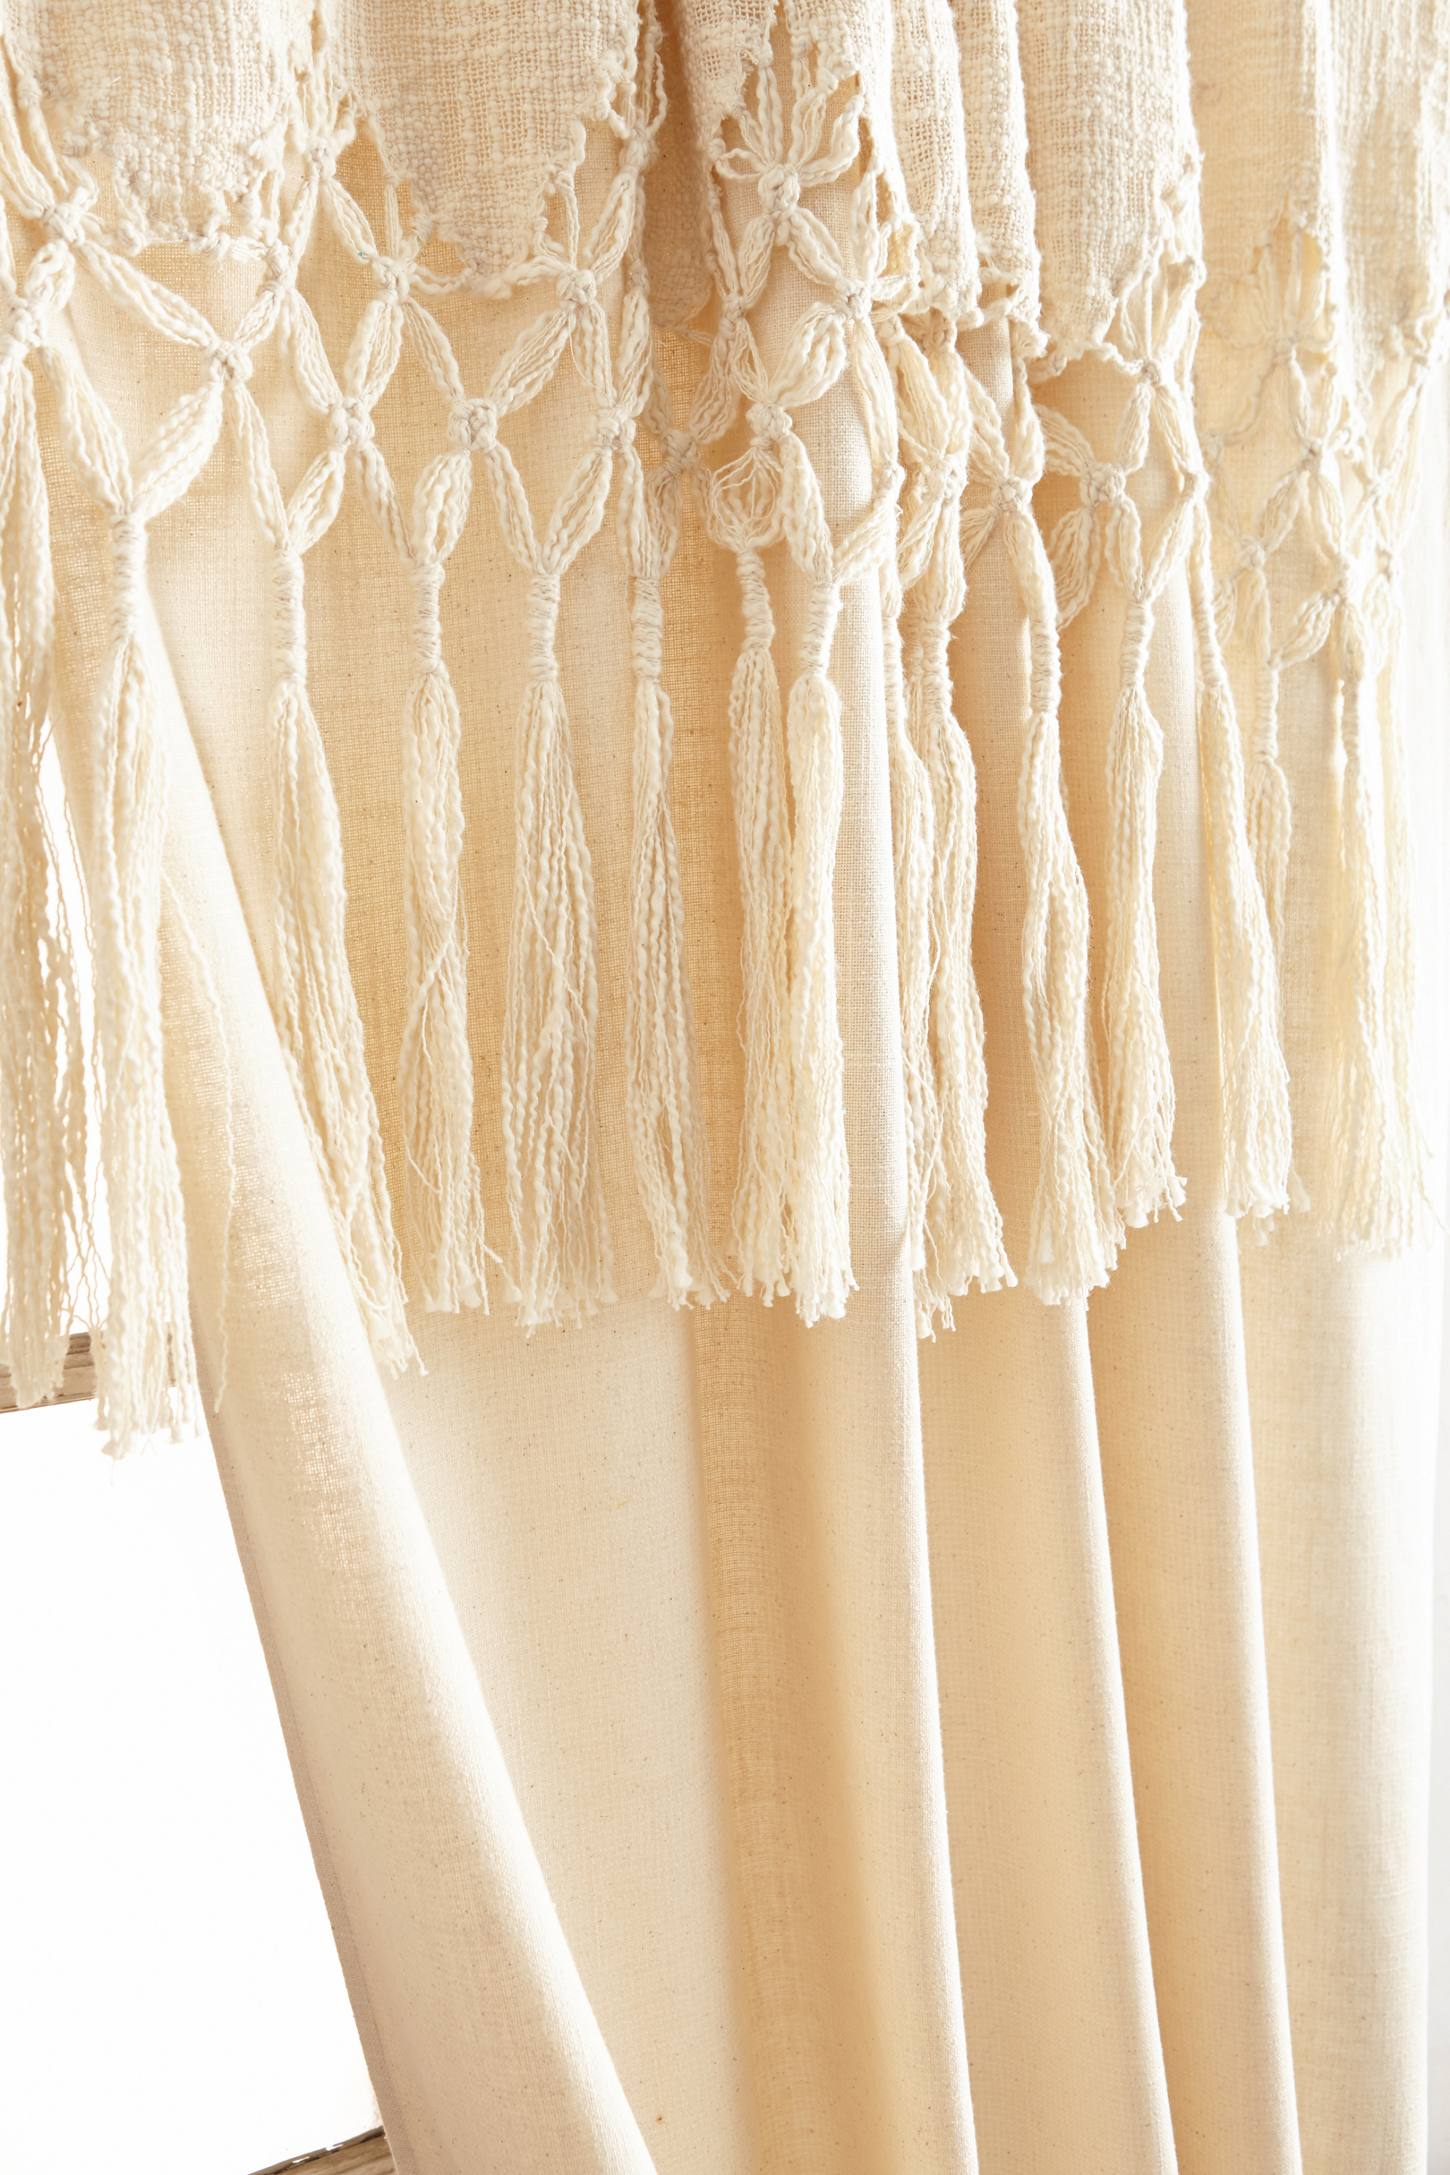 Slide View: 3: Knotted Macrame Curtain